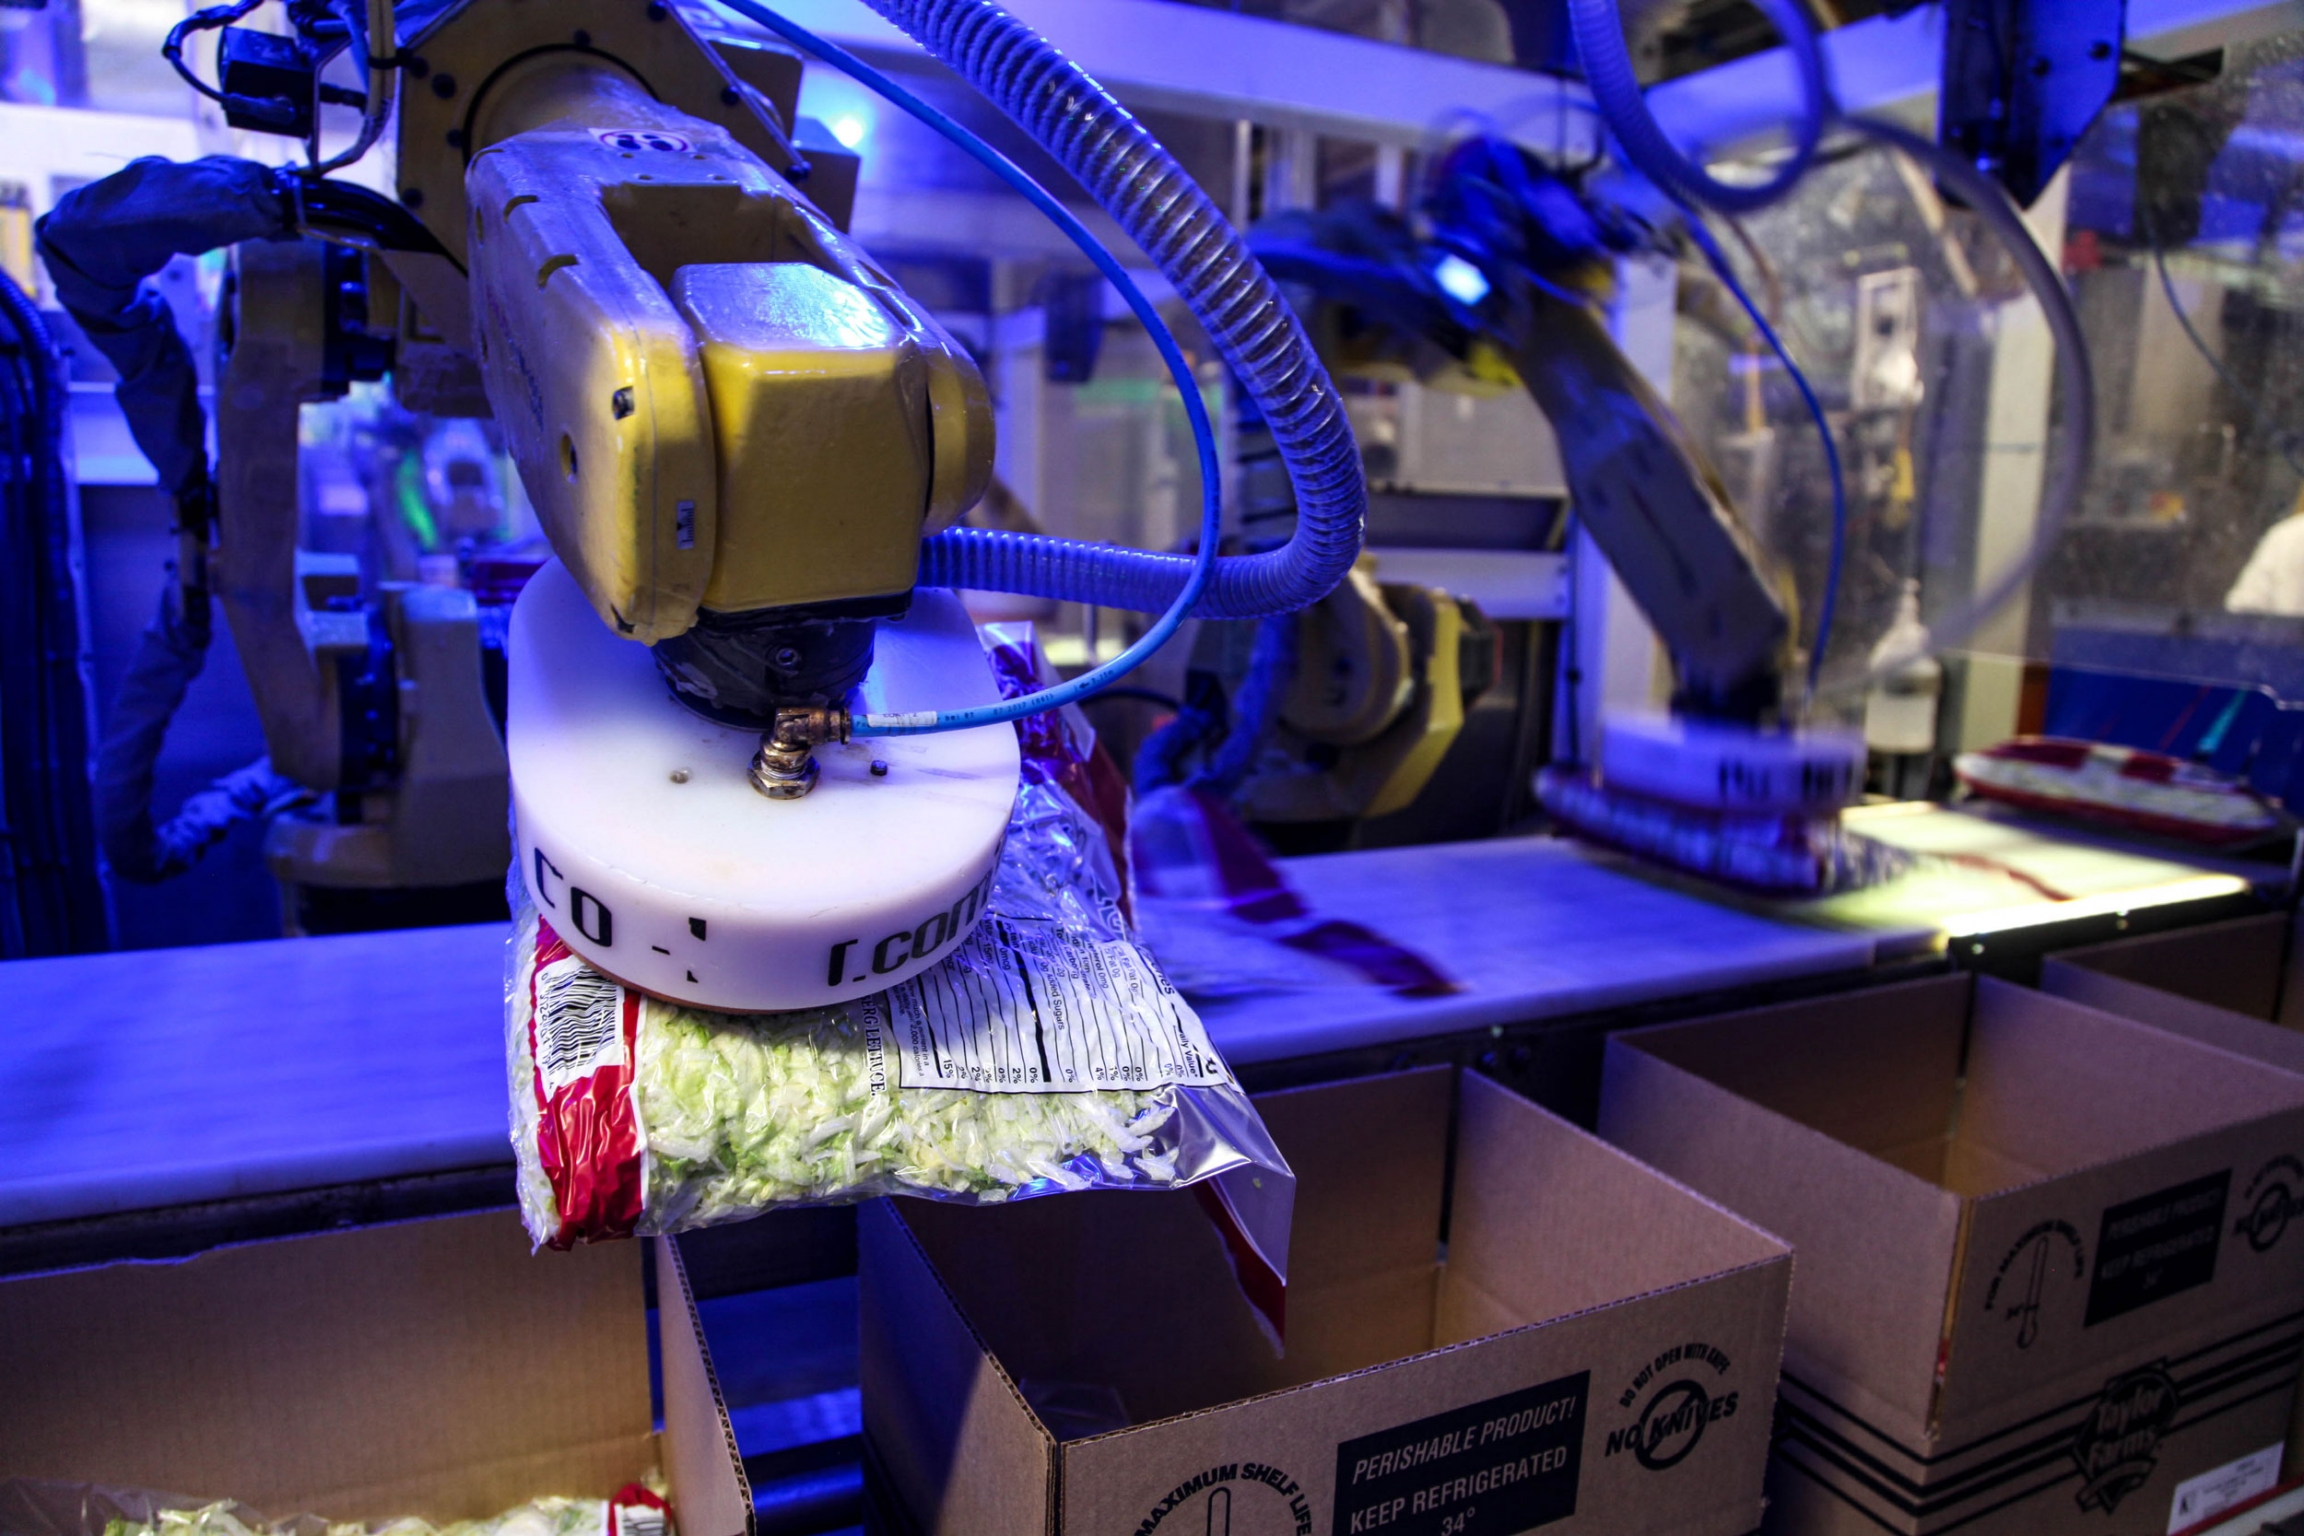 A robot uses suction to pick up a 5-lb back of lettuce and place it in a box. This task used to be done by workers.